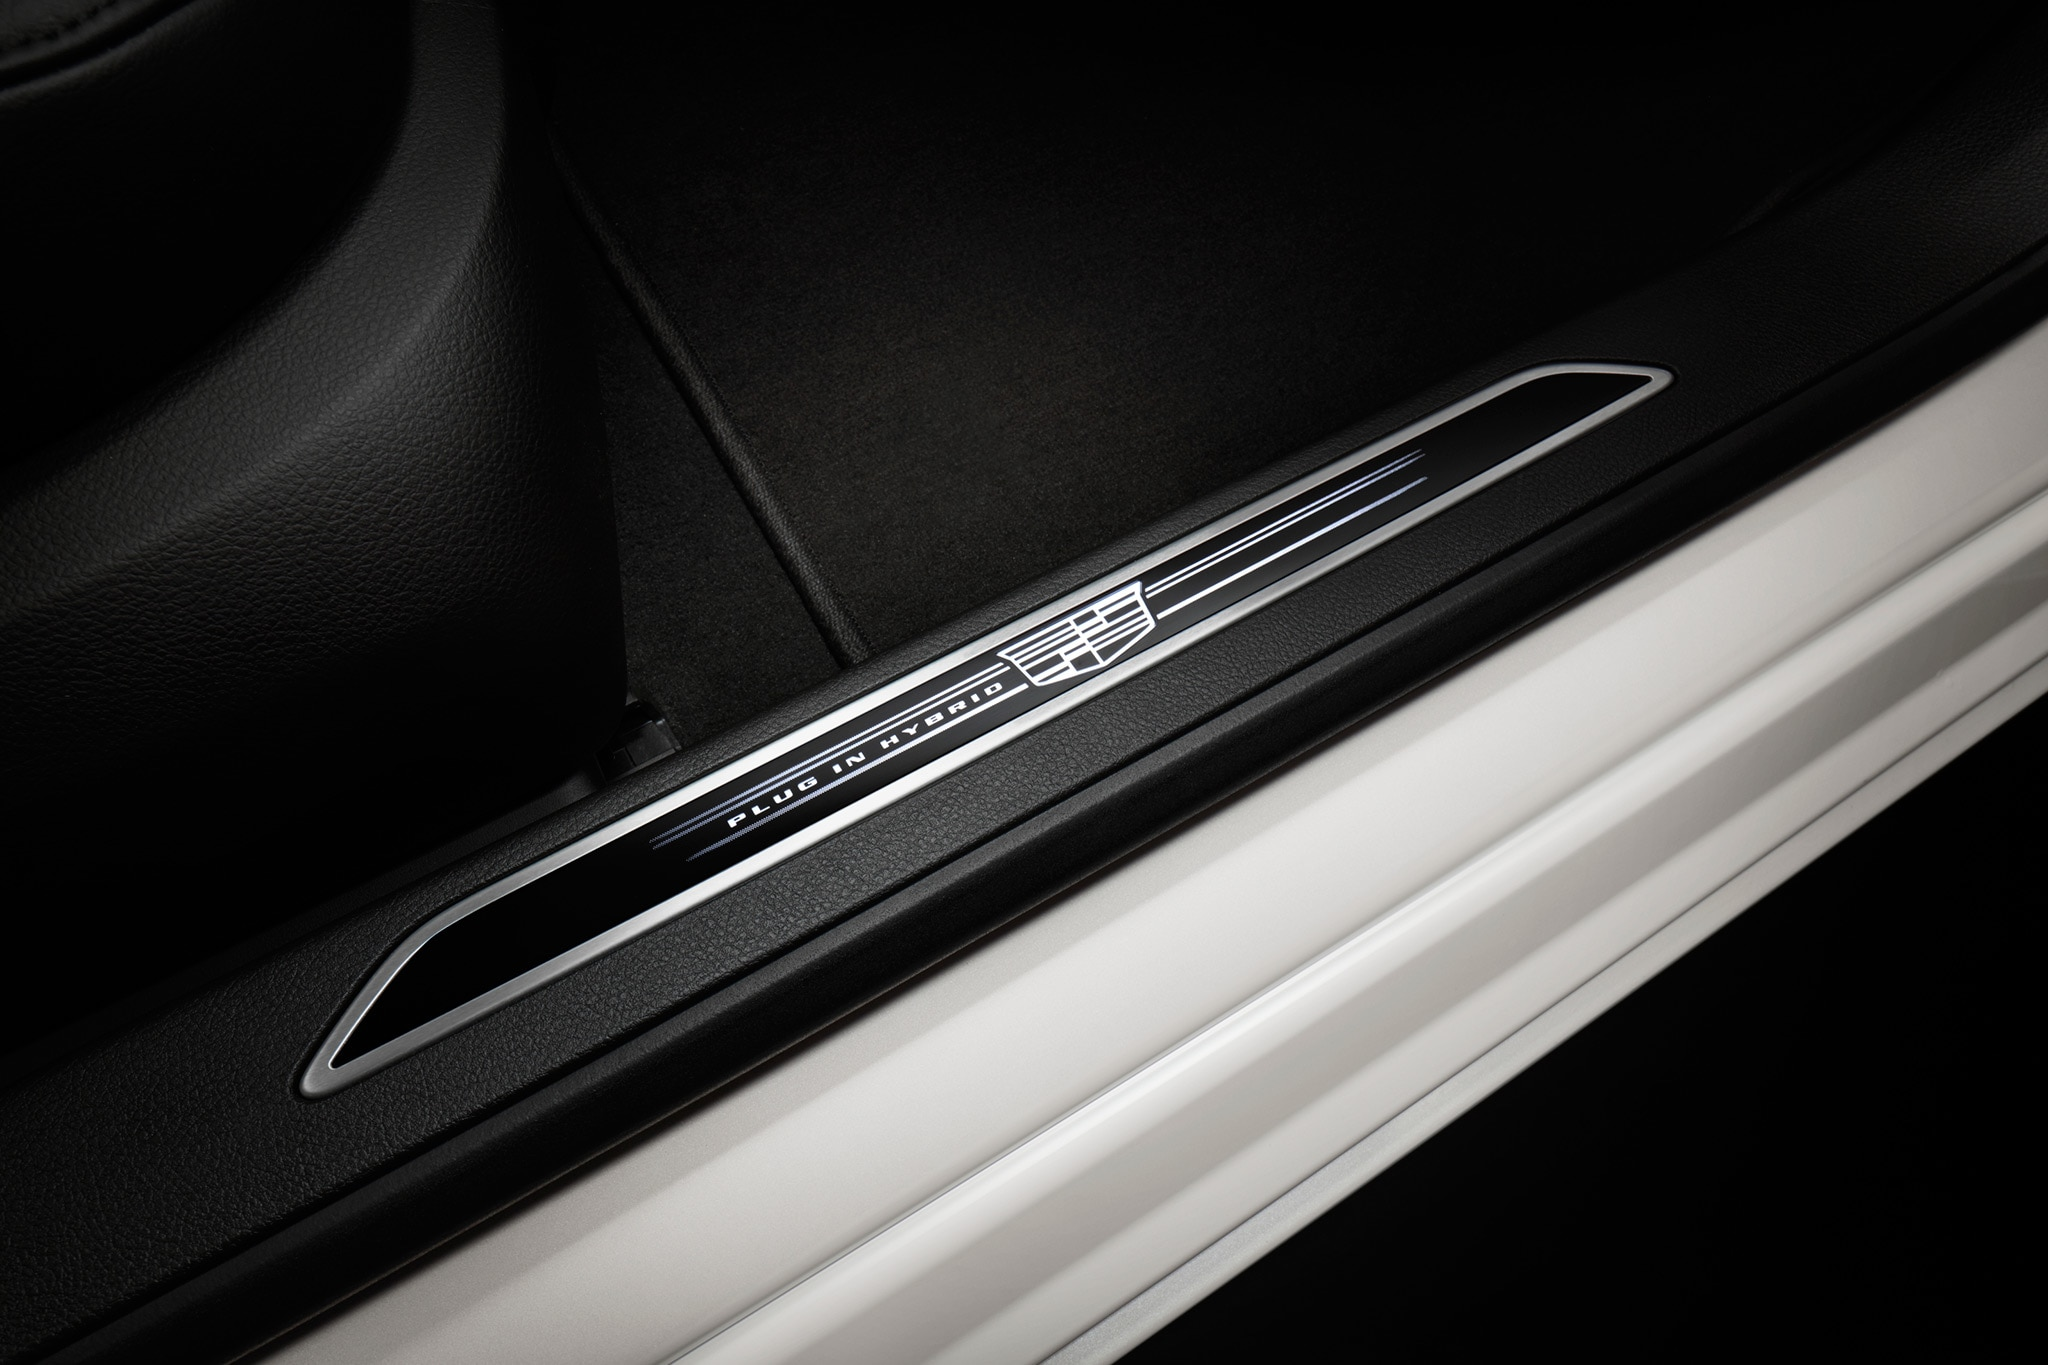 2017 Cadillac CT6 Plug In Hybrid Door Sill